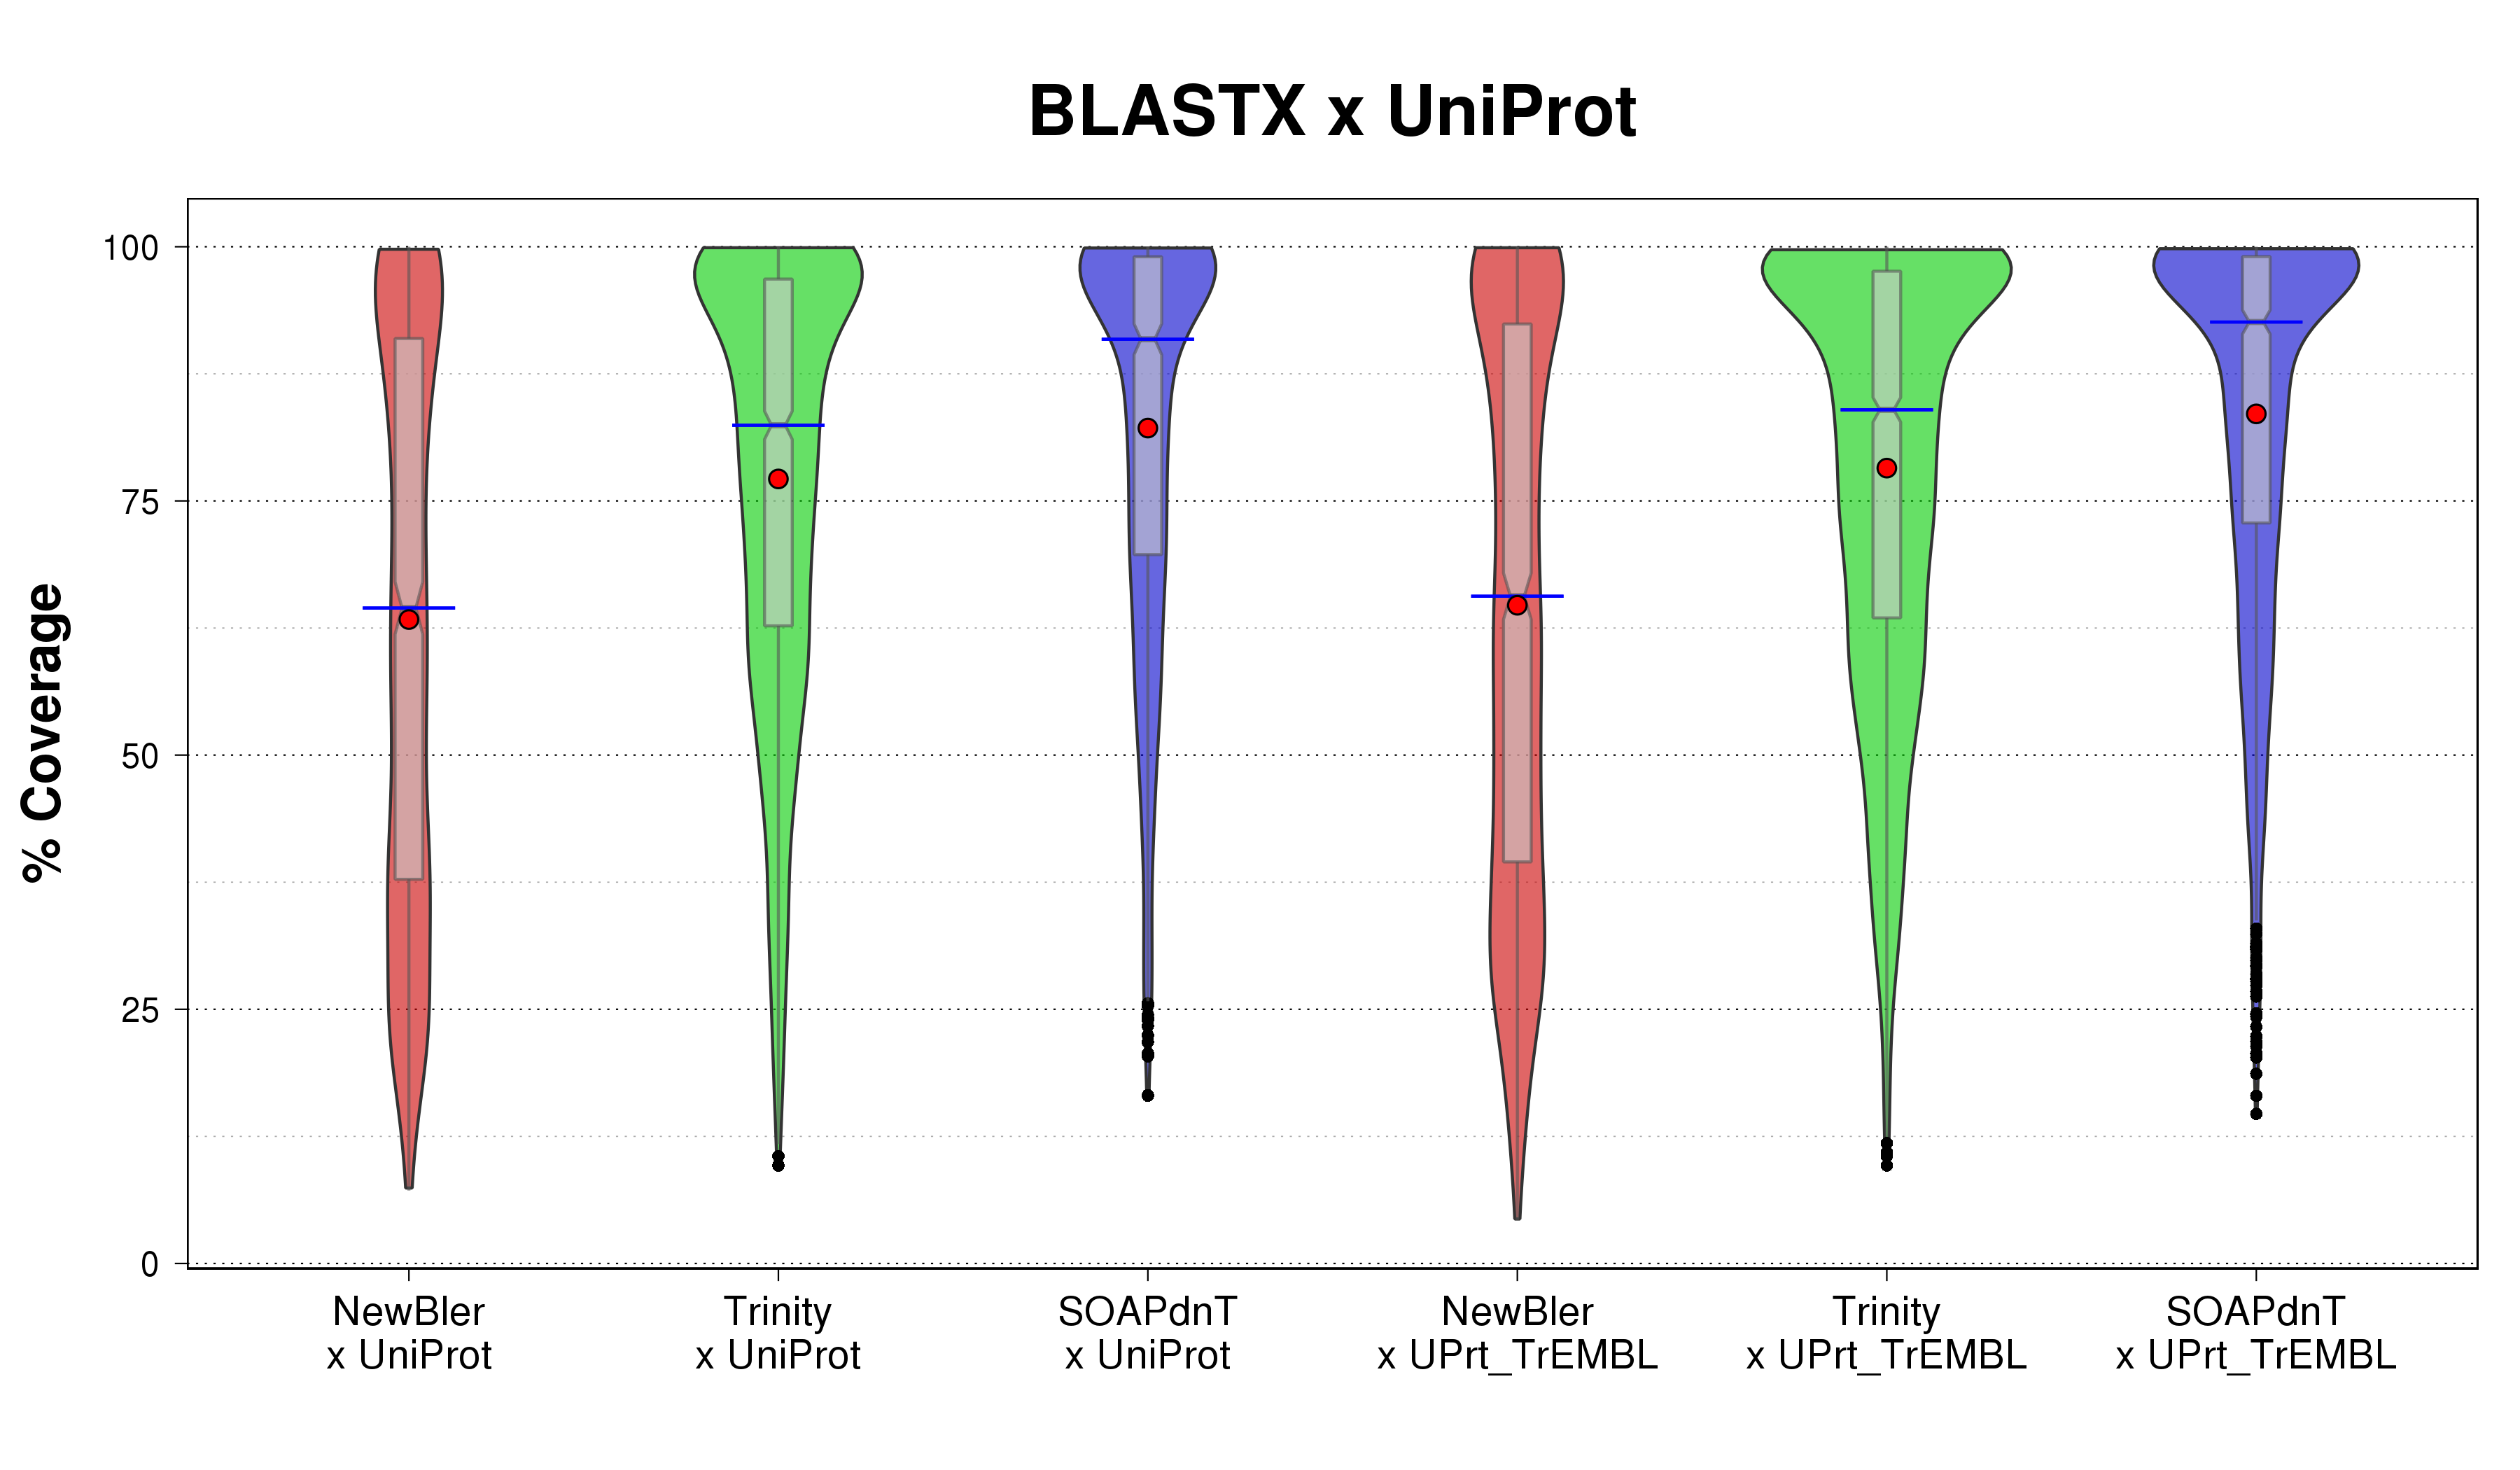 Violin plots comparison of assembled transcripts (on all three sets NewBler, Trinity, and SOAPdenovo-Trans) %coverage for the BLASTX search over UniProt and UniProt-TrEMBL protein sequence databases.